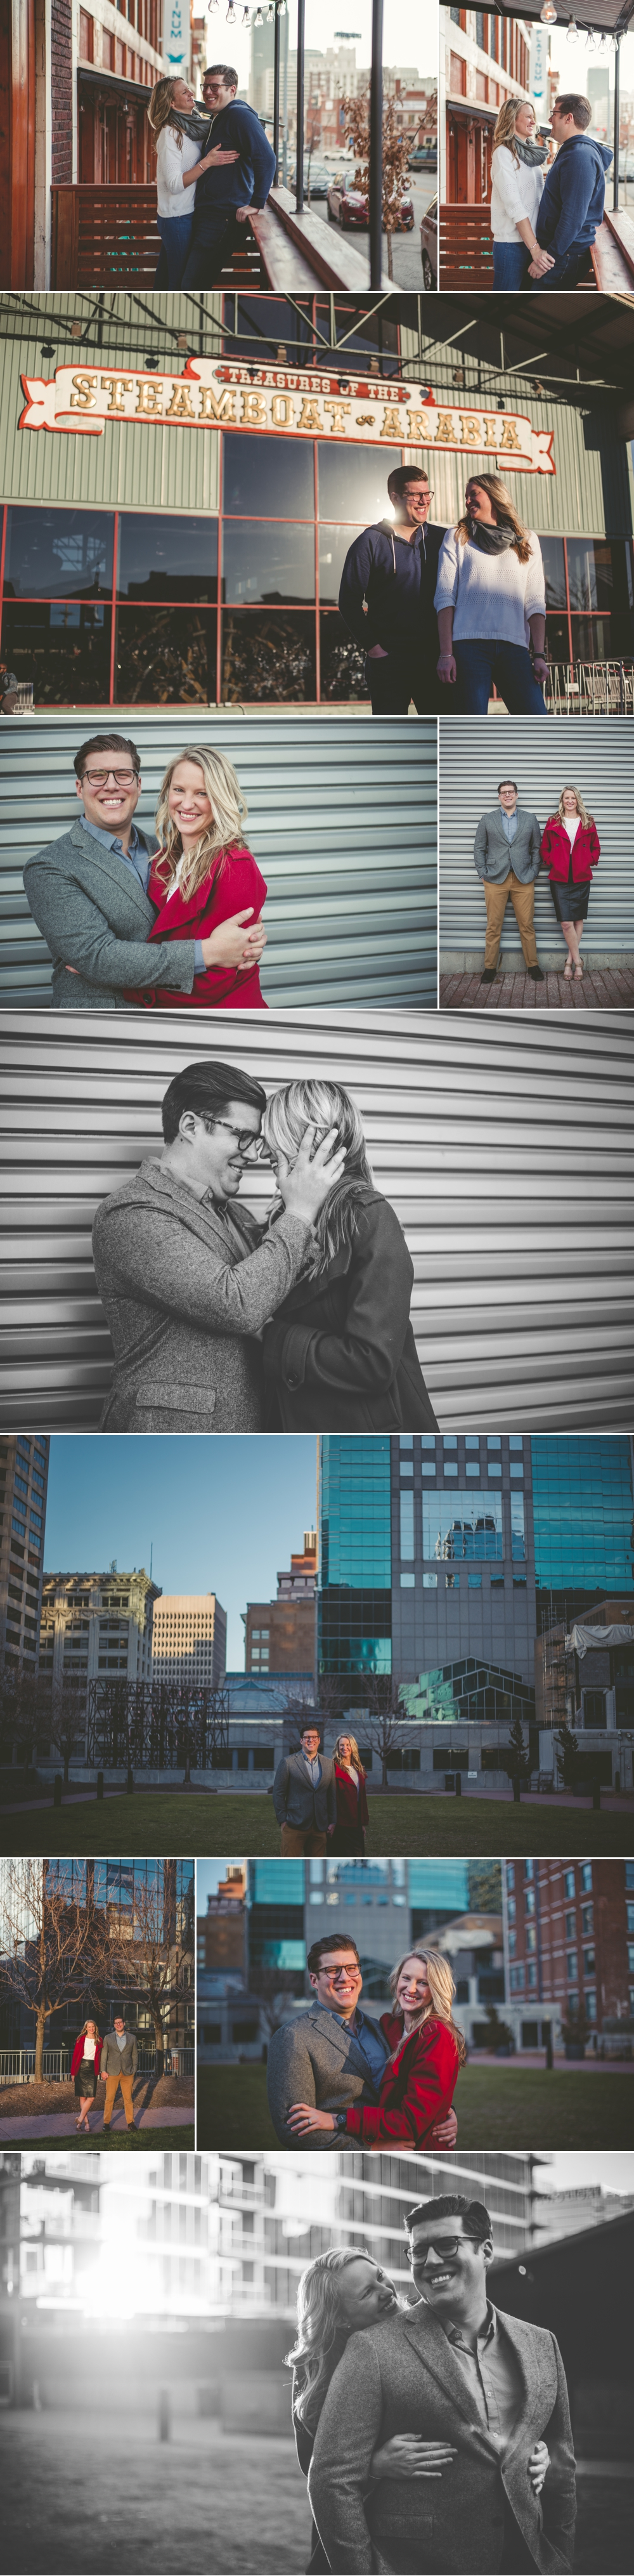 jason_domingues_photography_best_kansas_city_wedding_photographer_kc_engagement_session_tapcade_downtown_steamboat_arabia_river_market_0002.JPG